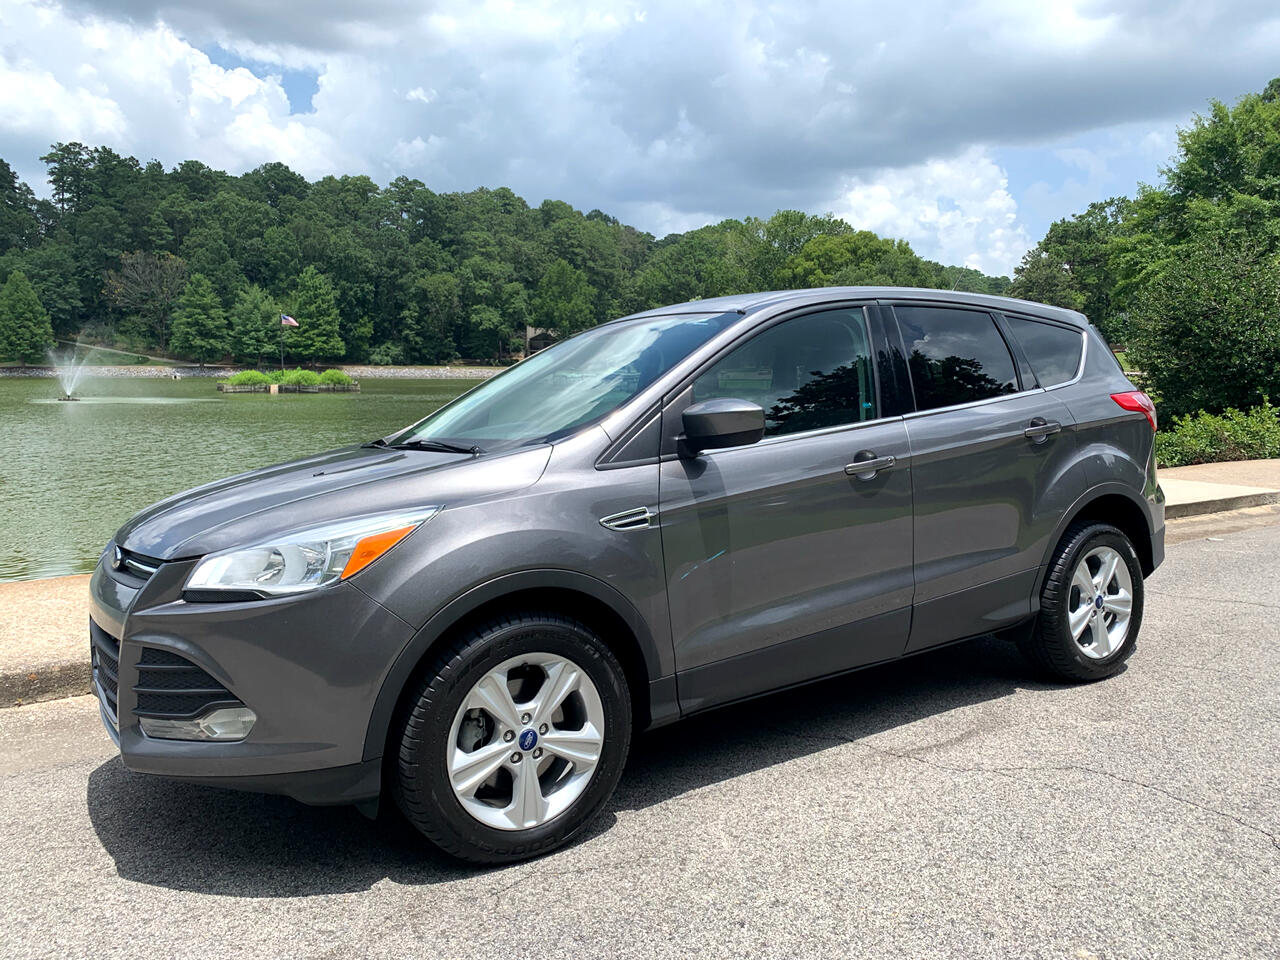 2013 Ford Escape 2WD 4dr I4 Auto XLT